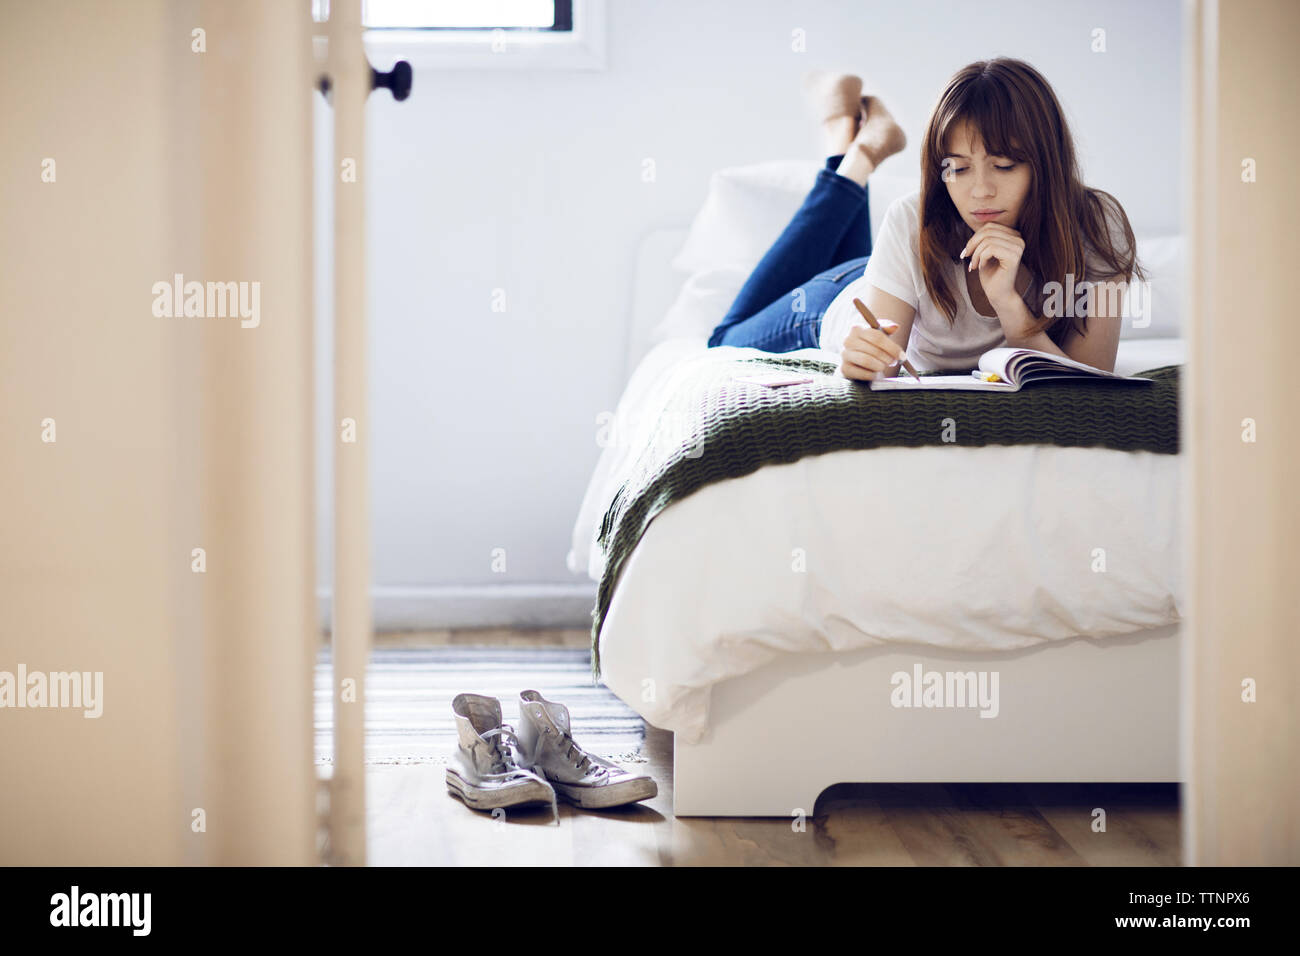 Young woman studying while lying on bed at home - Stock Image